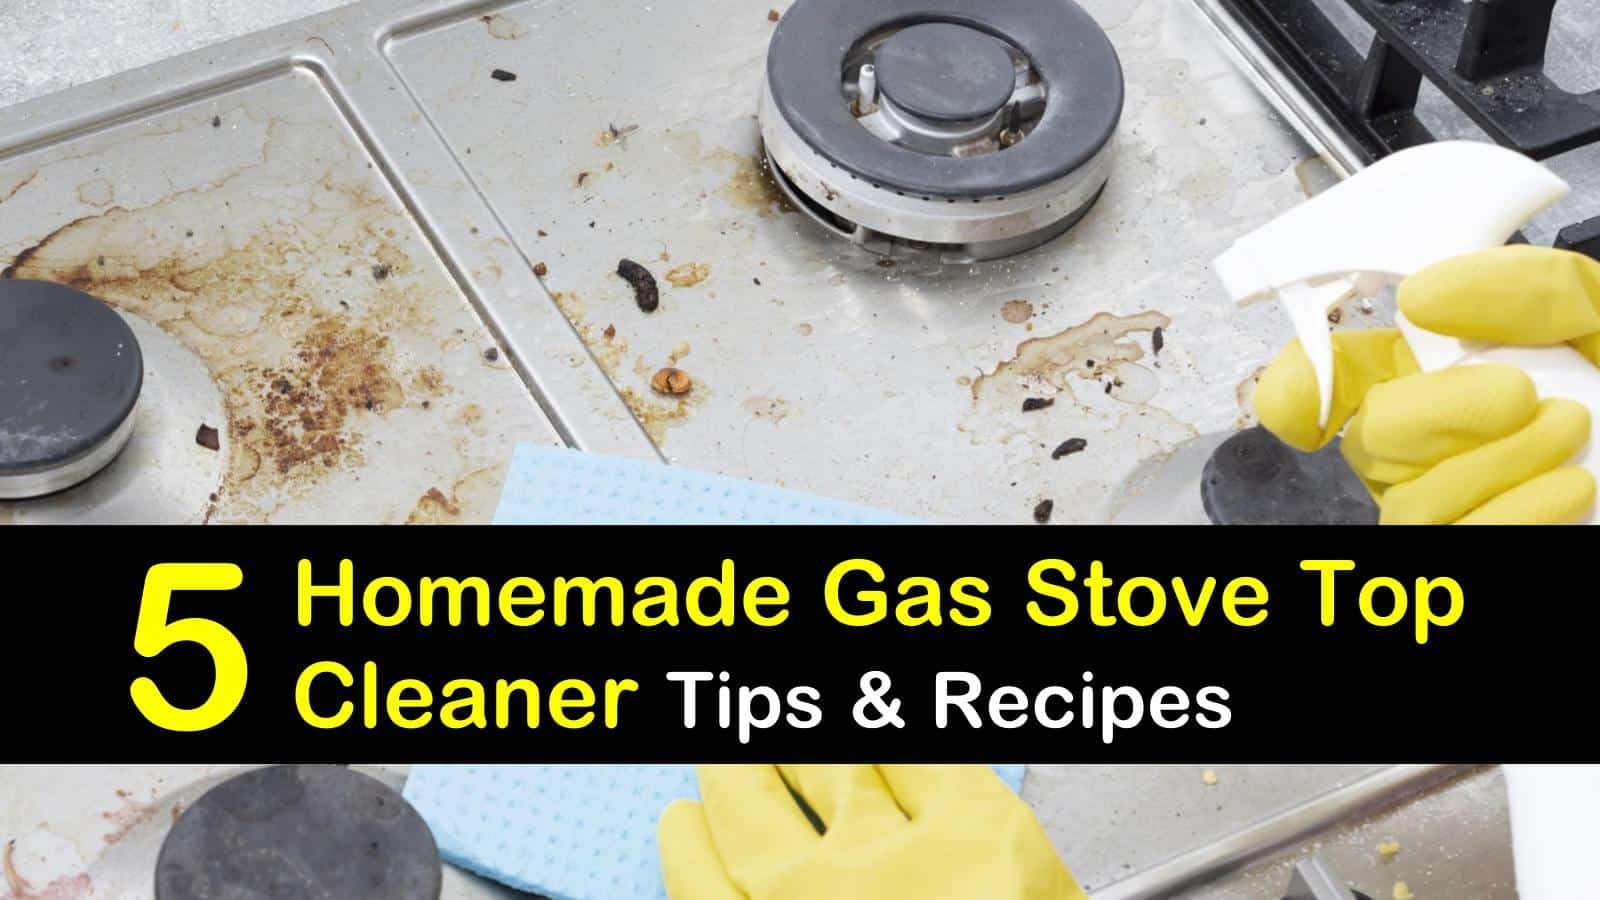 gas stove top cleaner titleimg1